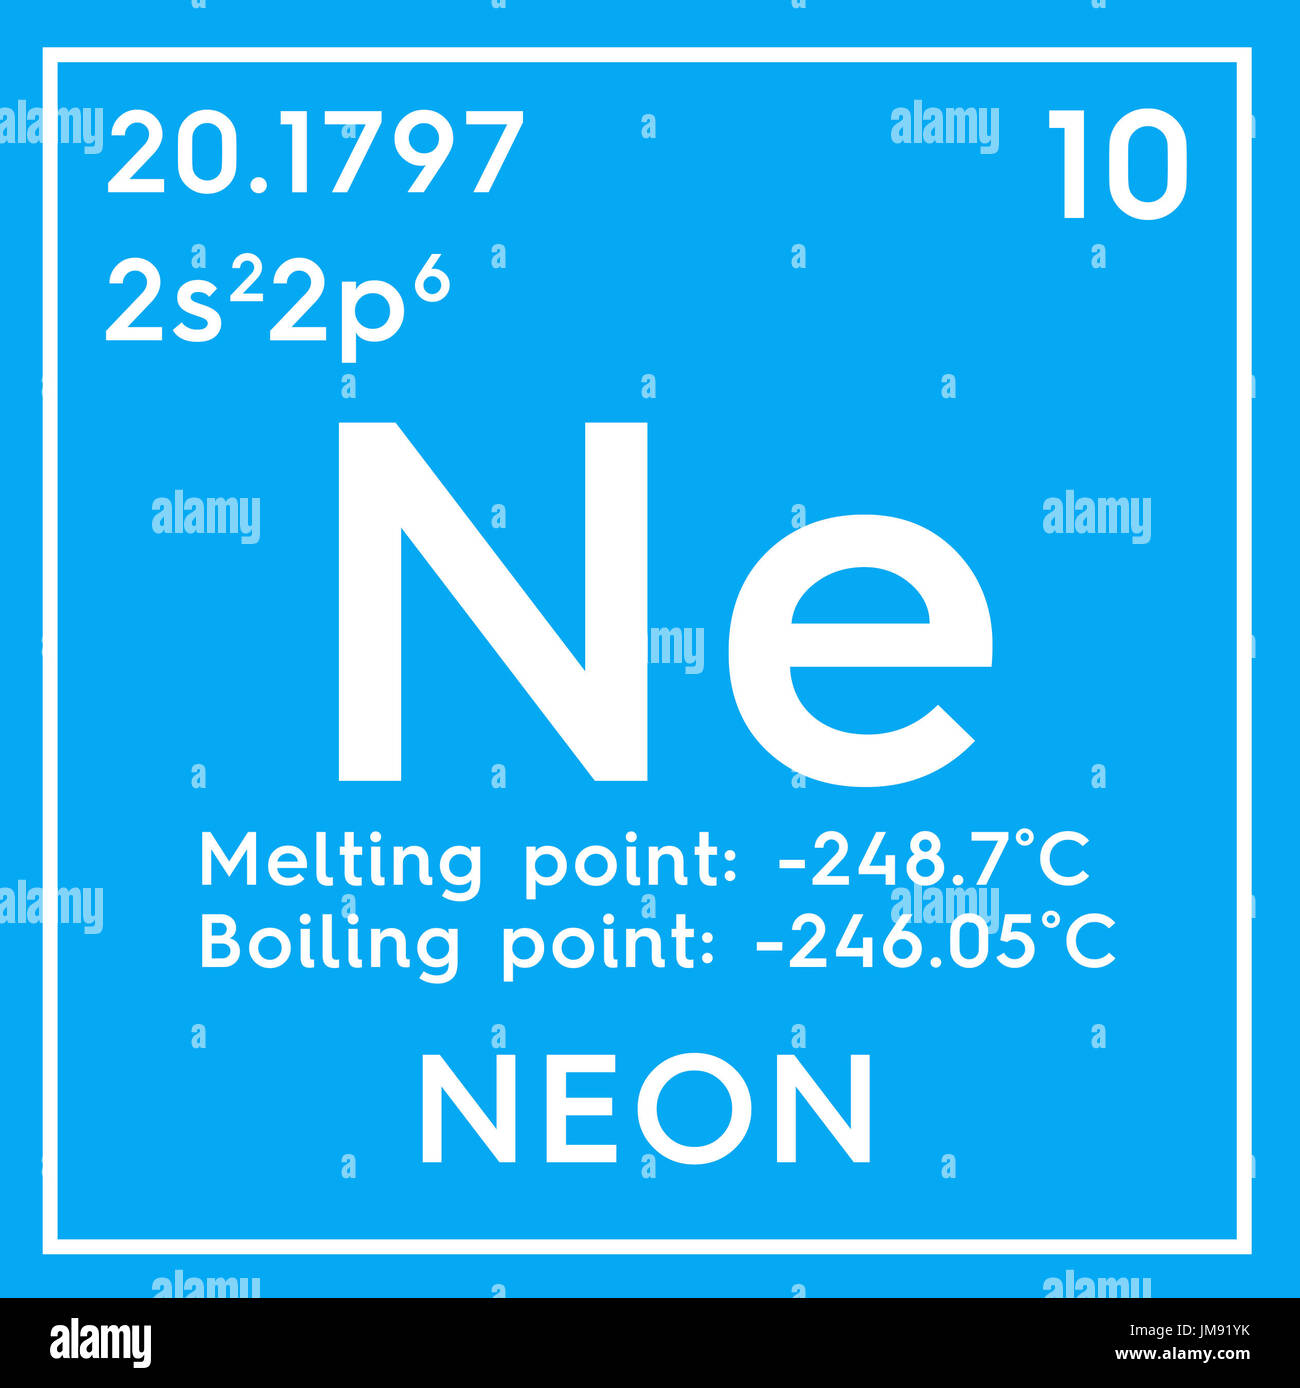 Neon noble gases chemical element of mendeleevs periodic table neon noble gases chemical element of mendeleevs periodic table neon in square cube creative concept urtaz Gallery